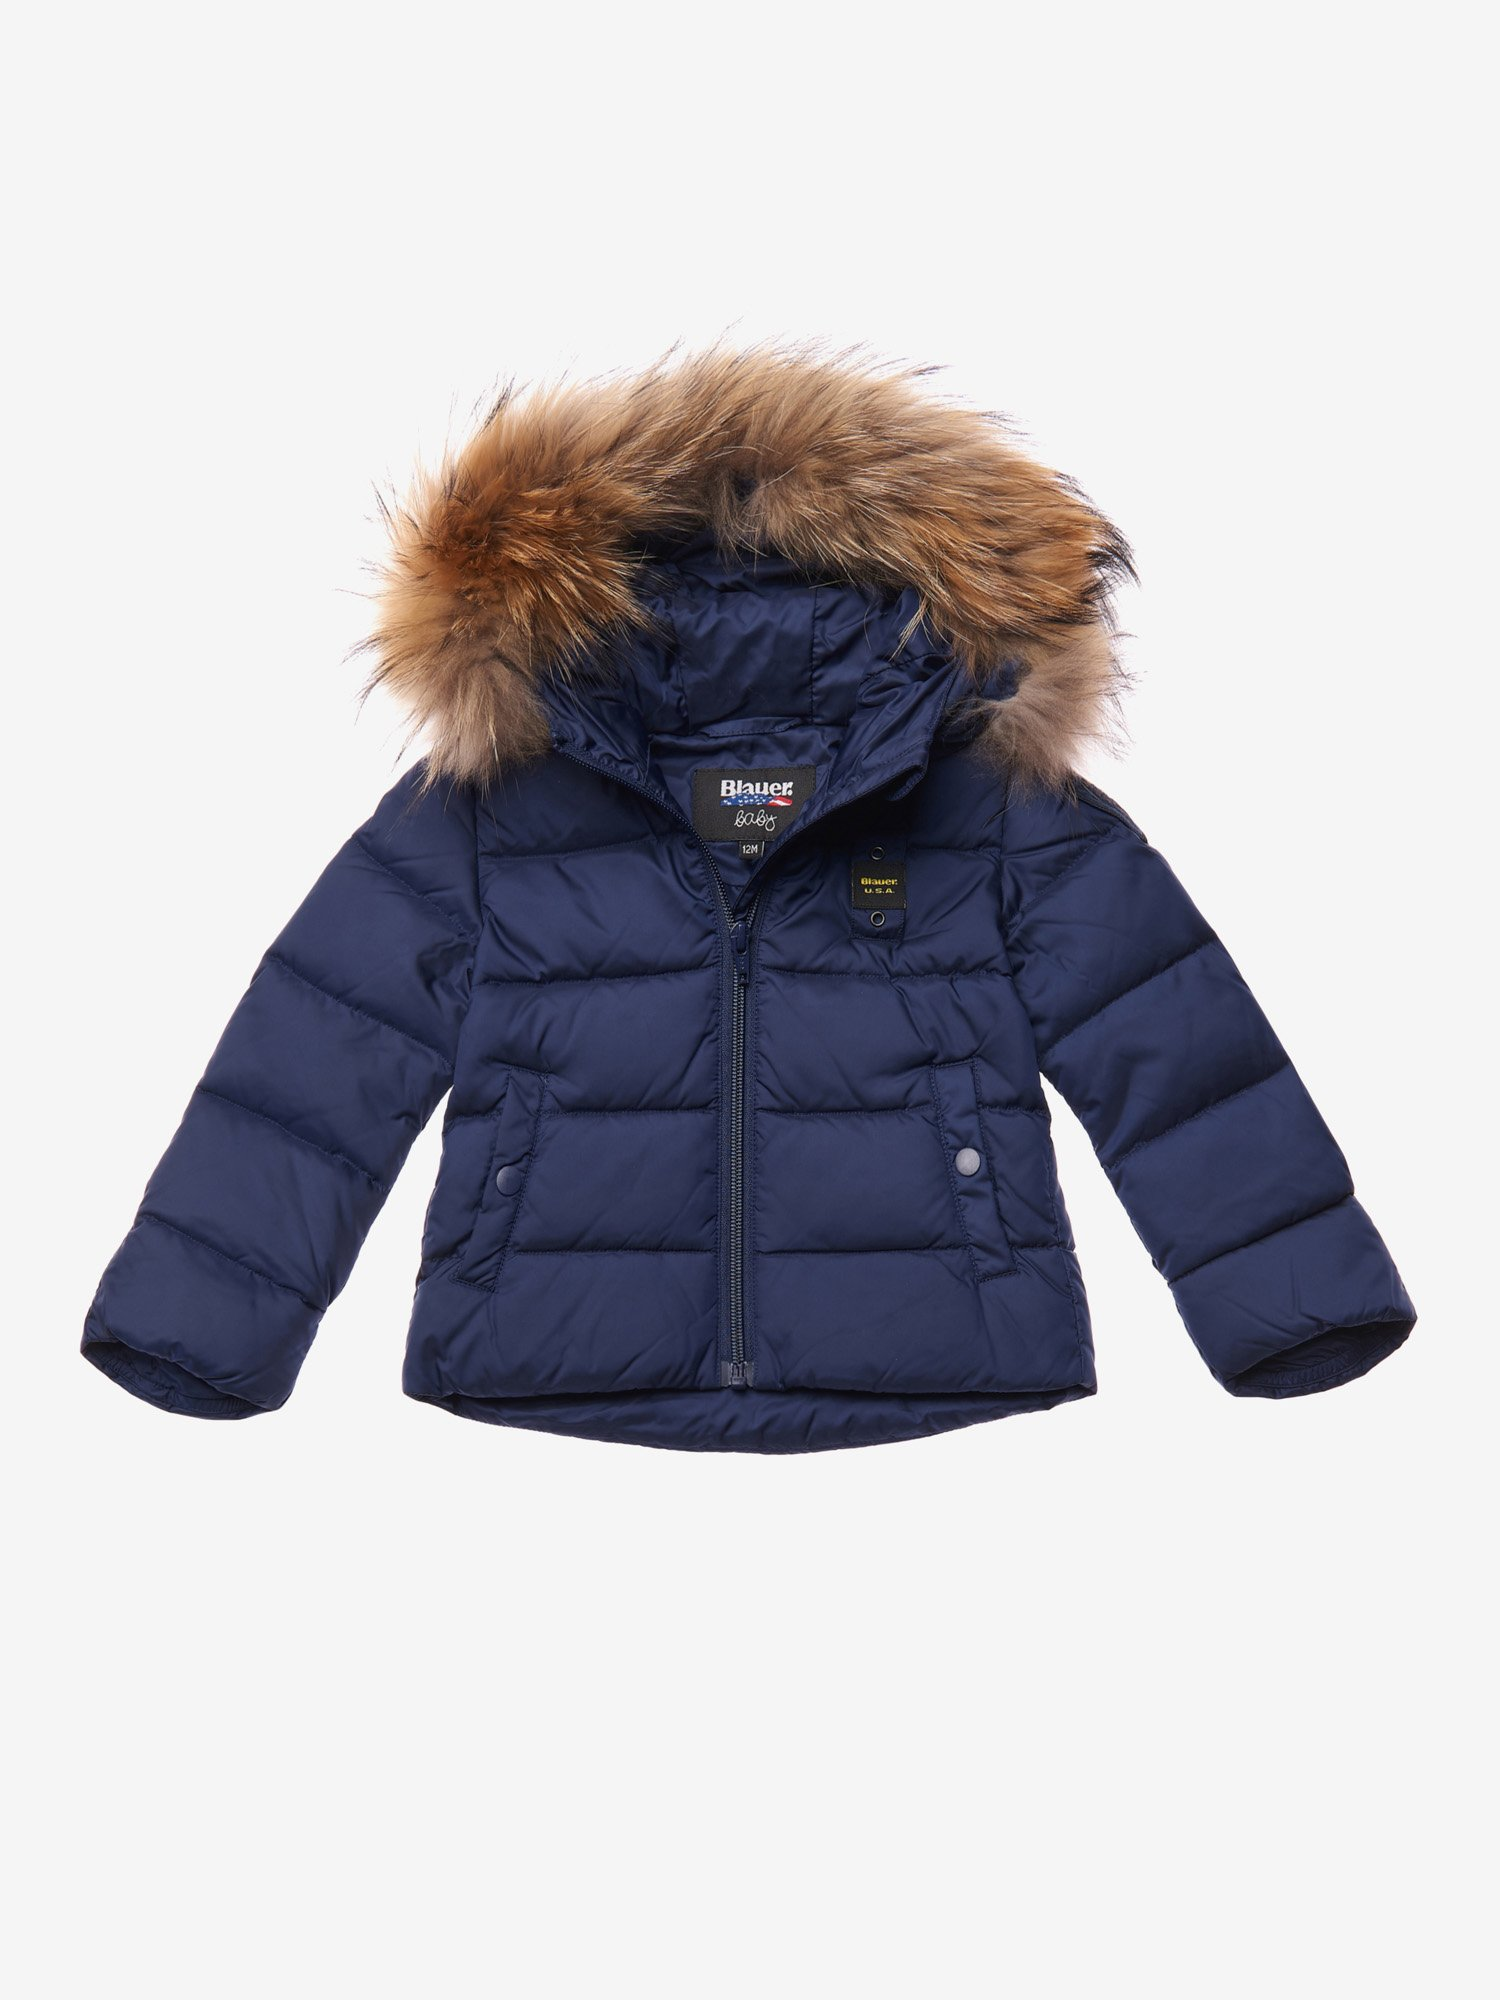 BARRETT BABY DOWN JACKET WITH HOOD AND FUR - Blauer